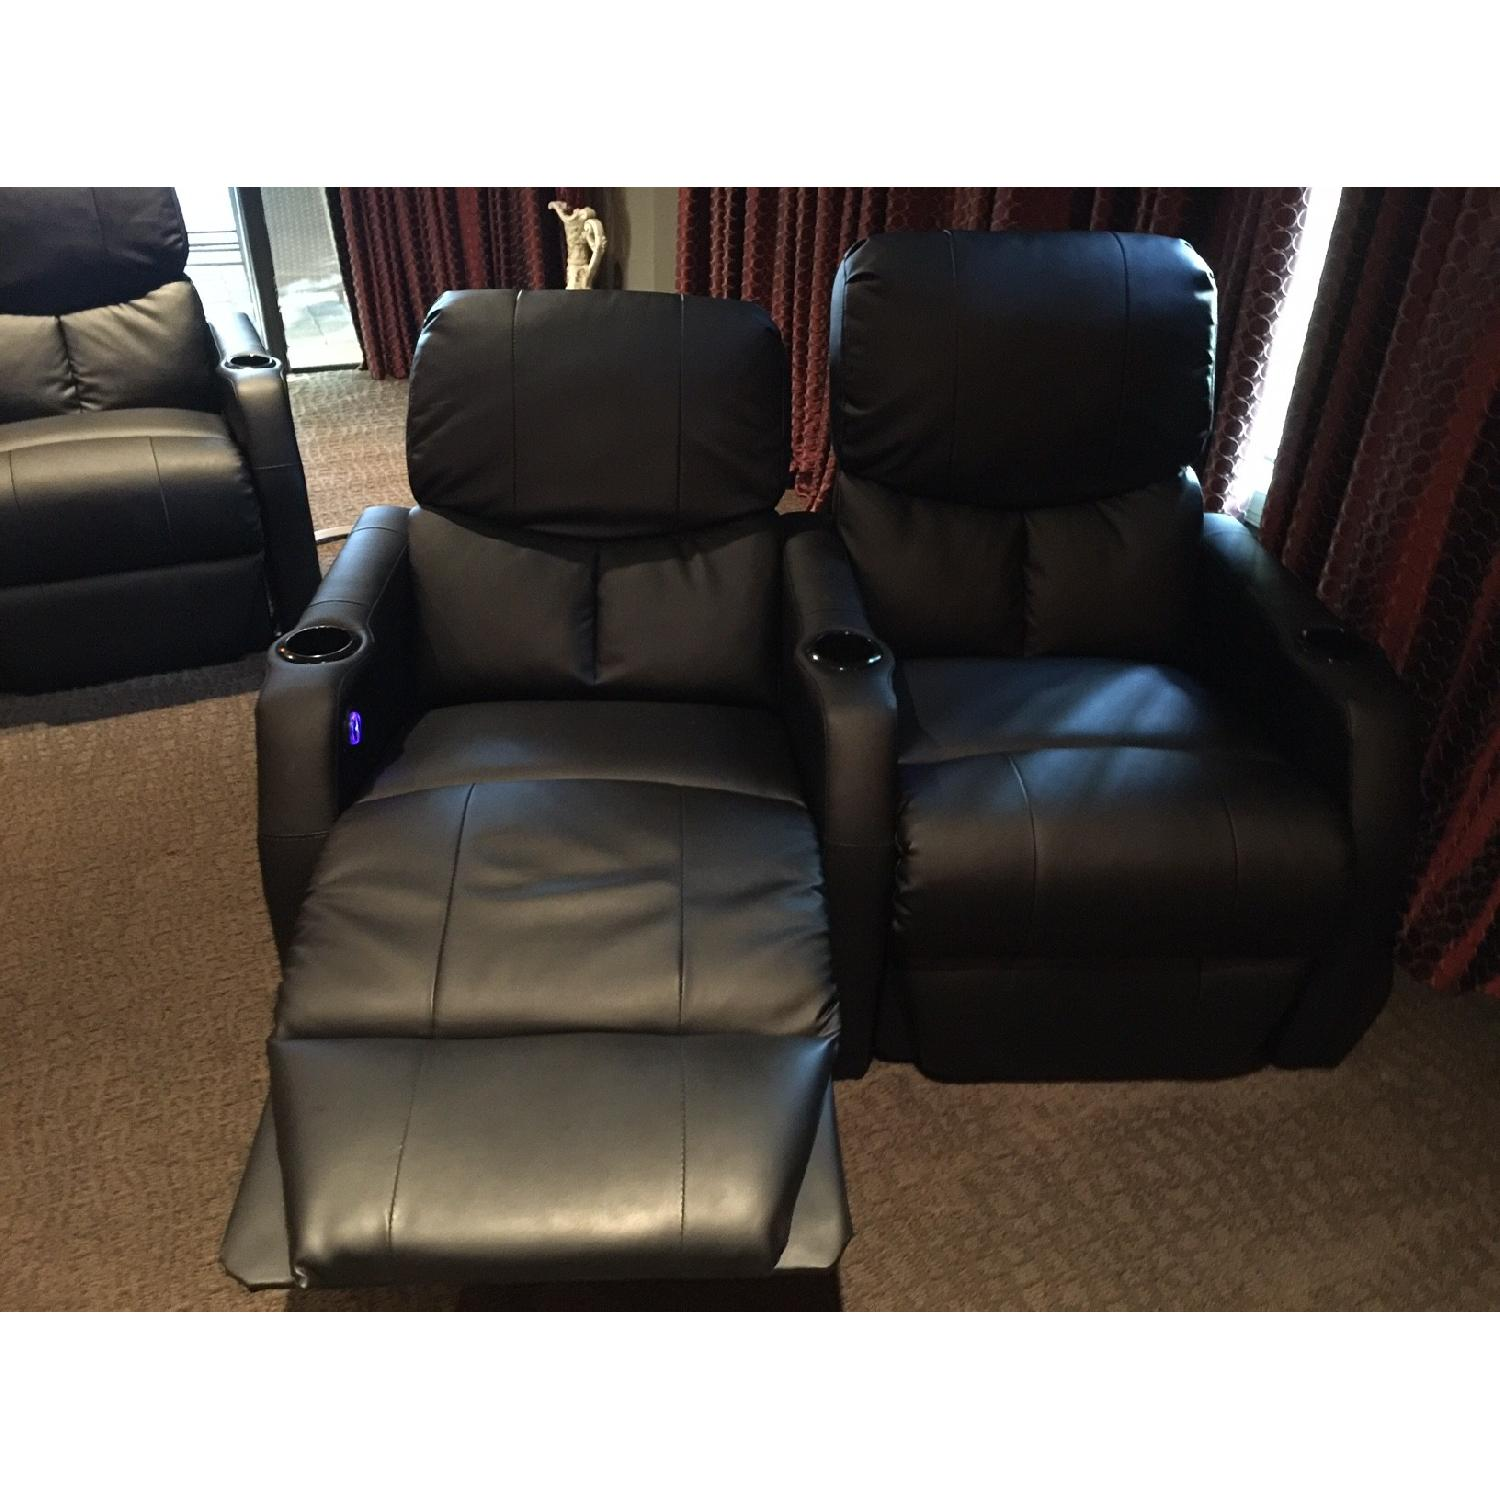 SeatCraft Home Theater Recliners - image-4